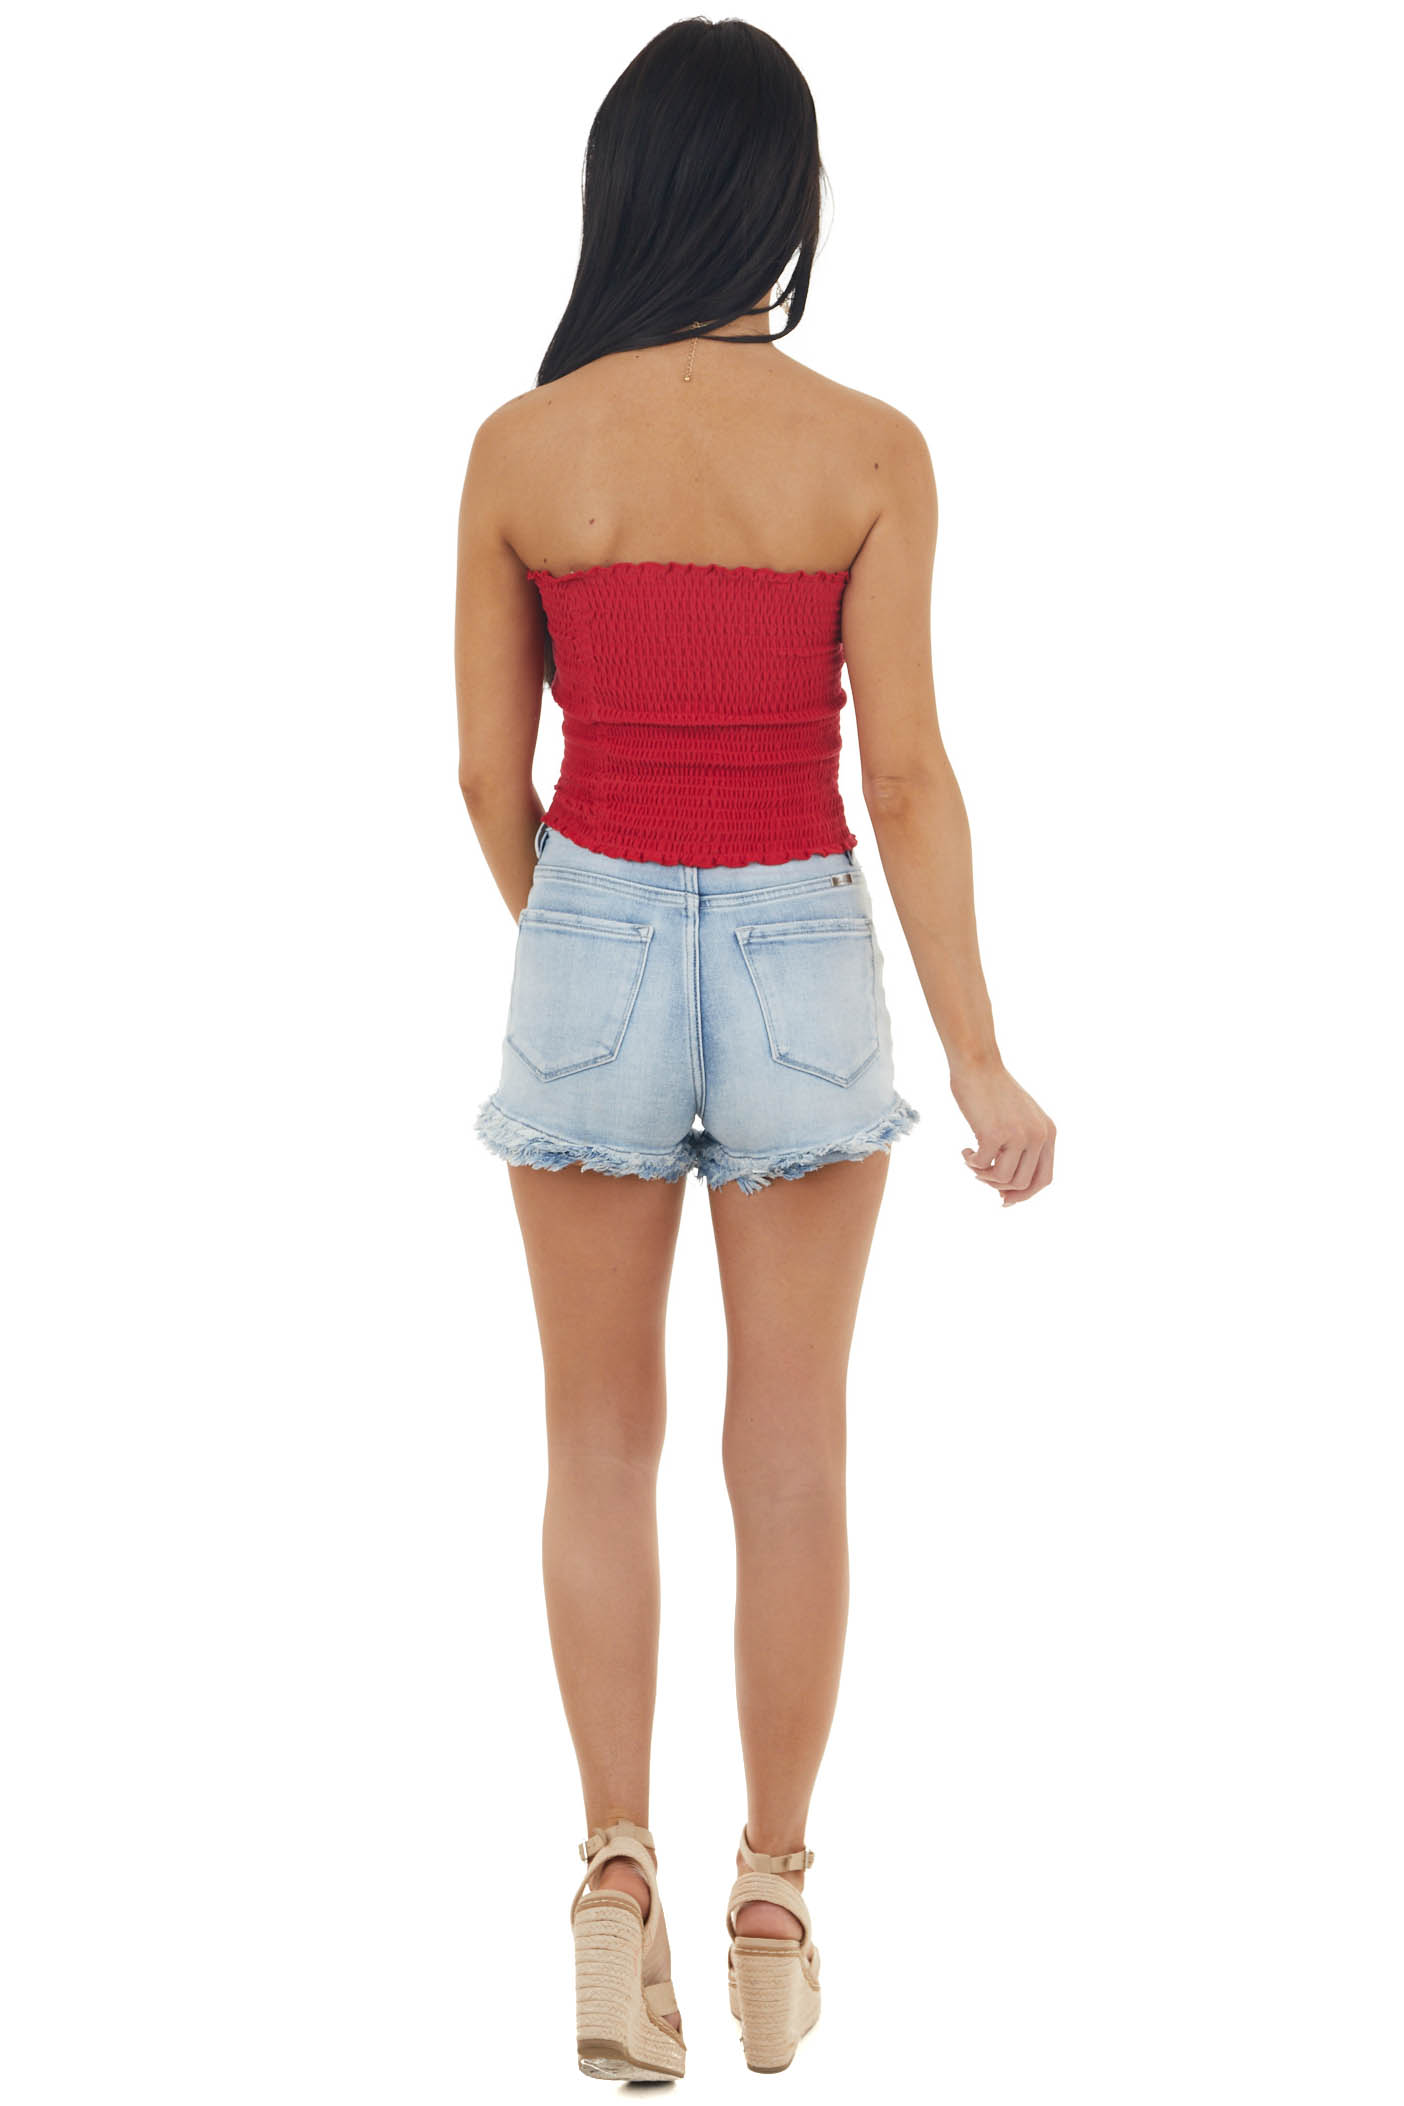 Ruby Smocked Strapless Bandeau Top with Ruffled Hemlines